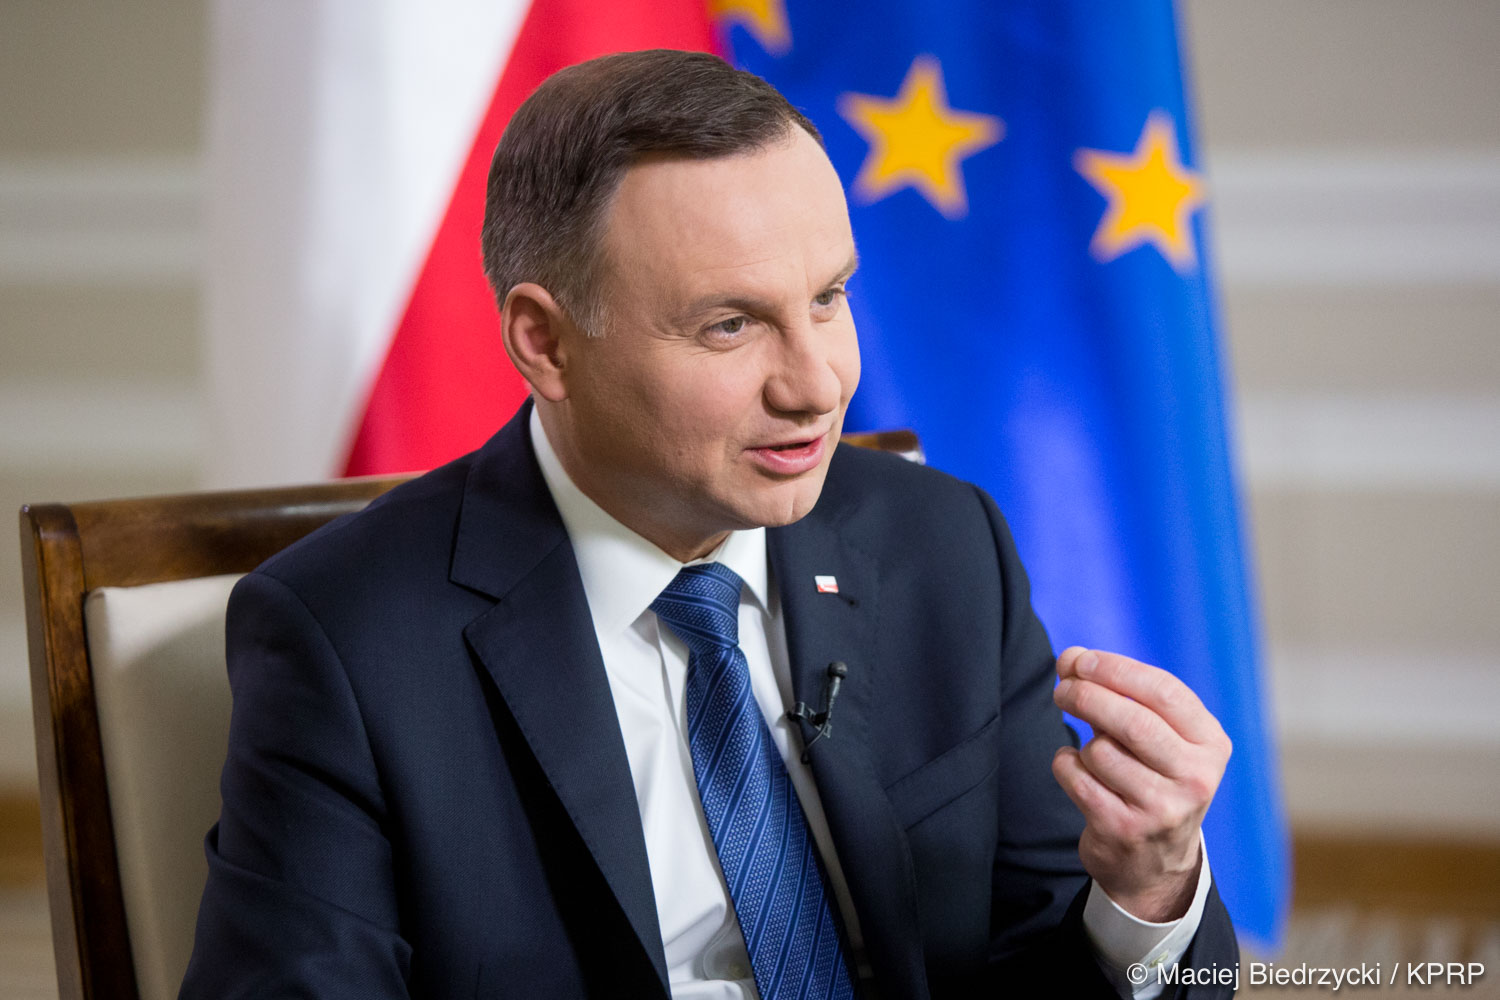 Polish president sets off on historic trip to Australia and New Zealand